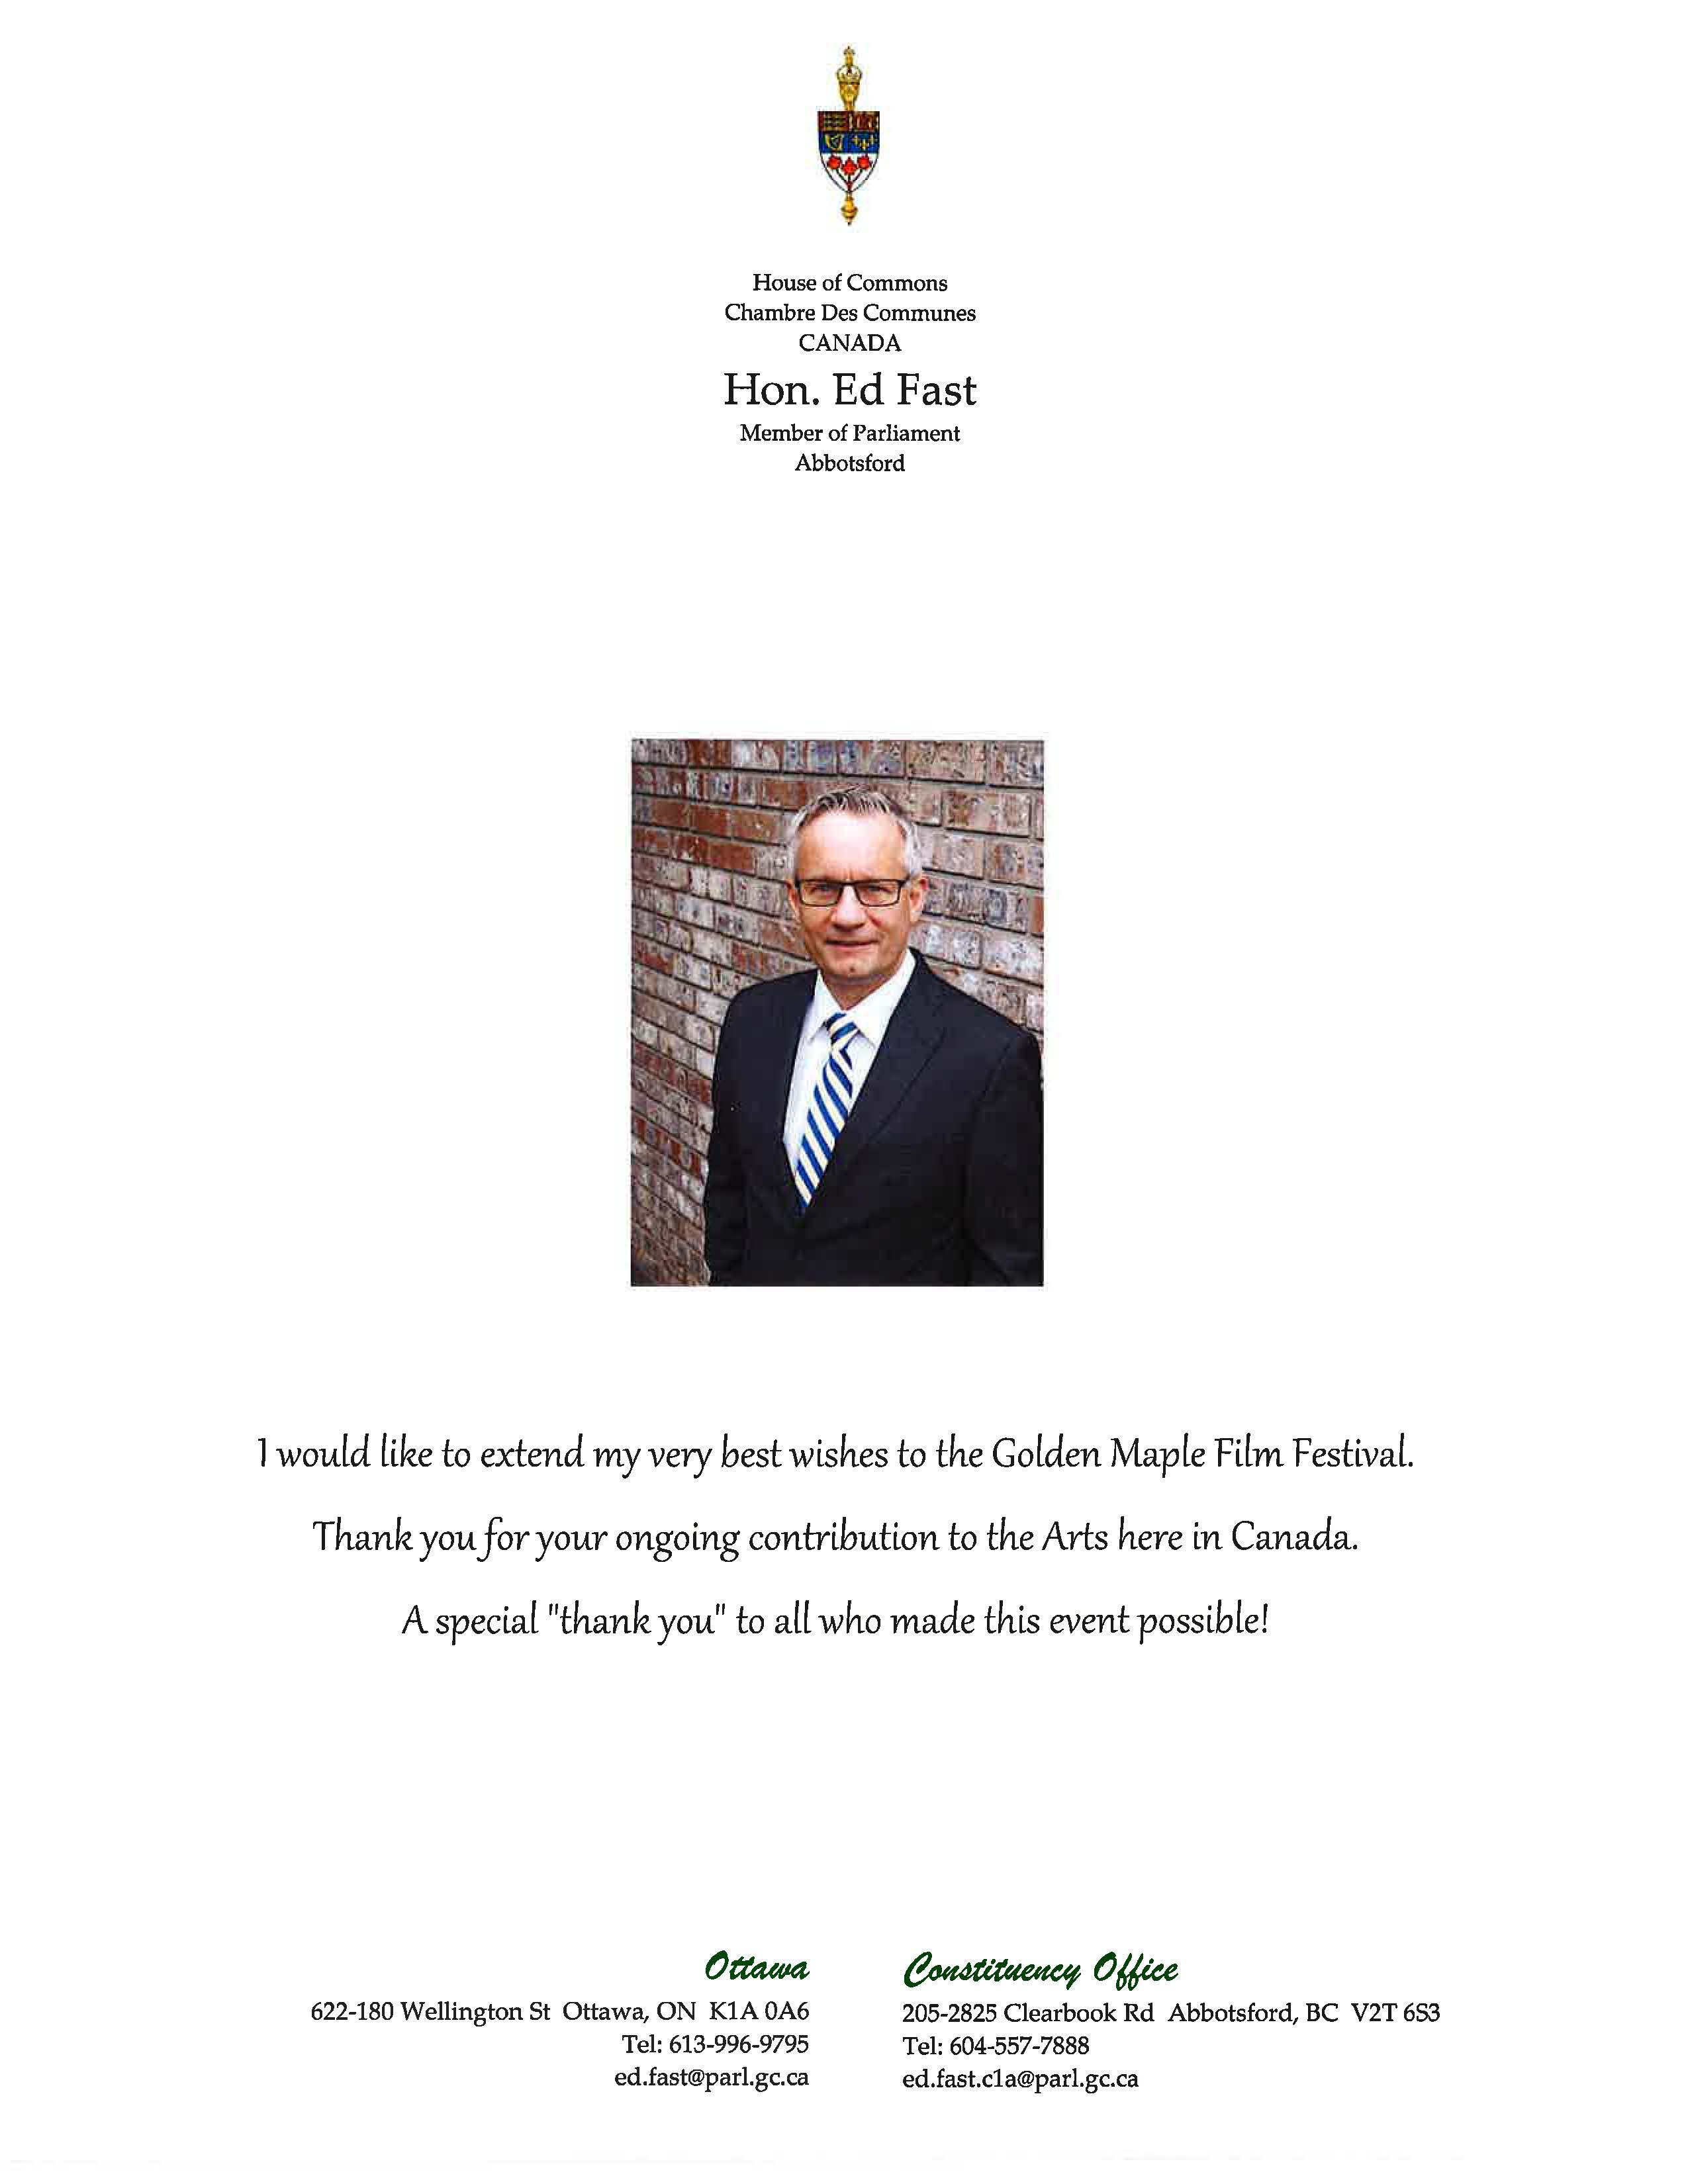 Congratulatory Letter from Ed Fast, Federal Member of Parliament